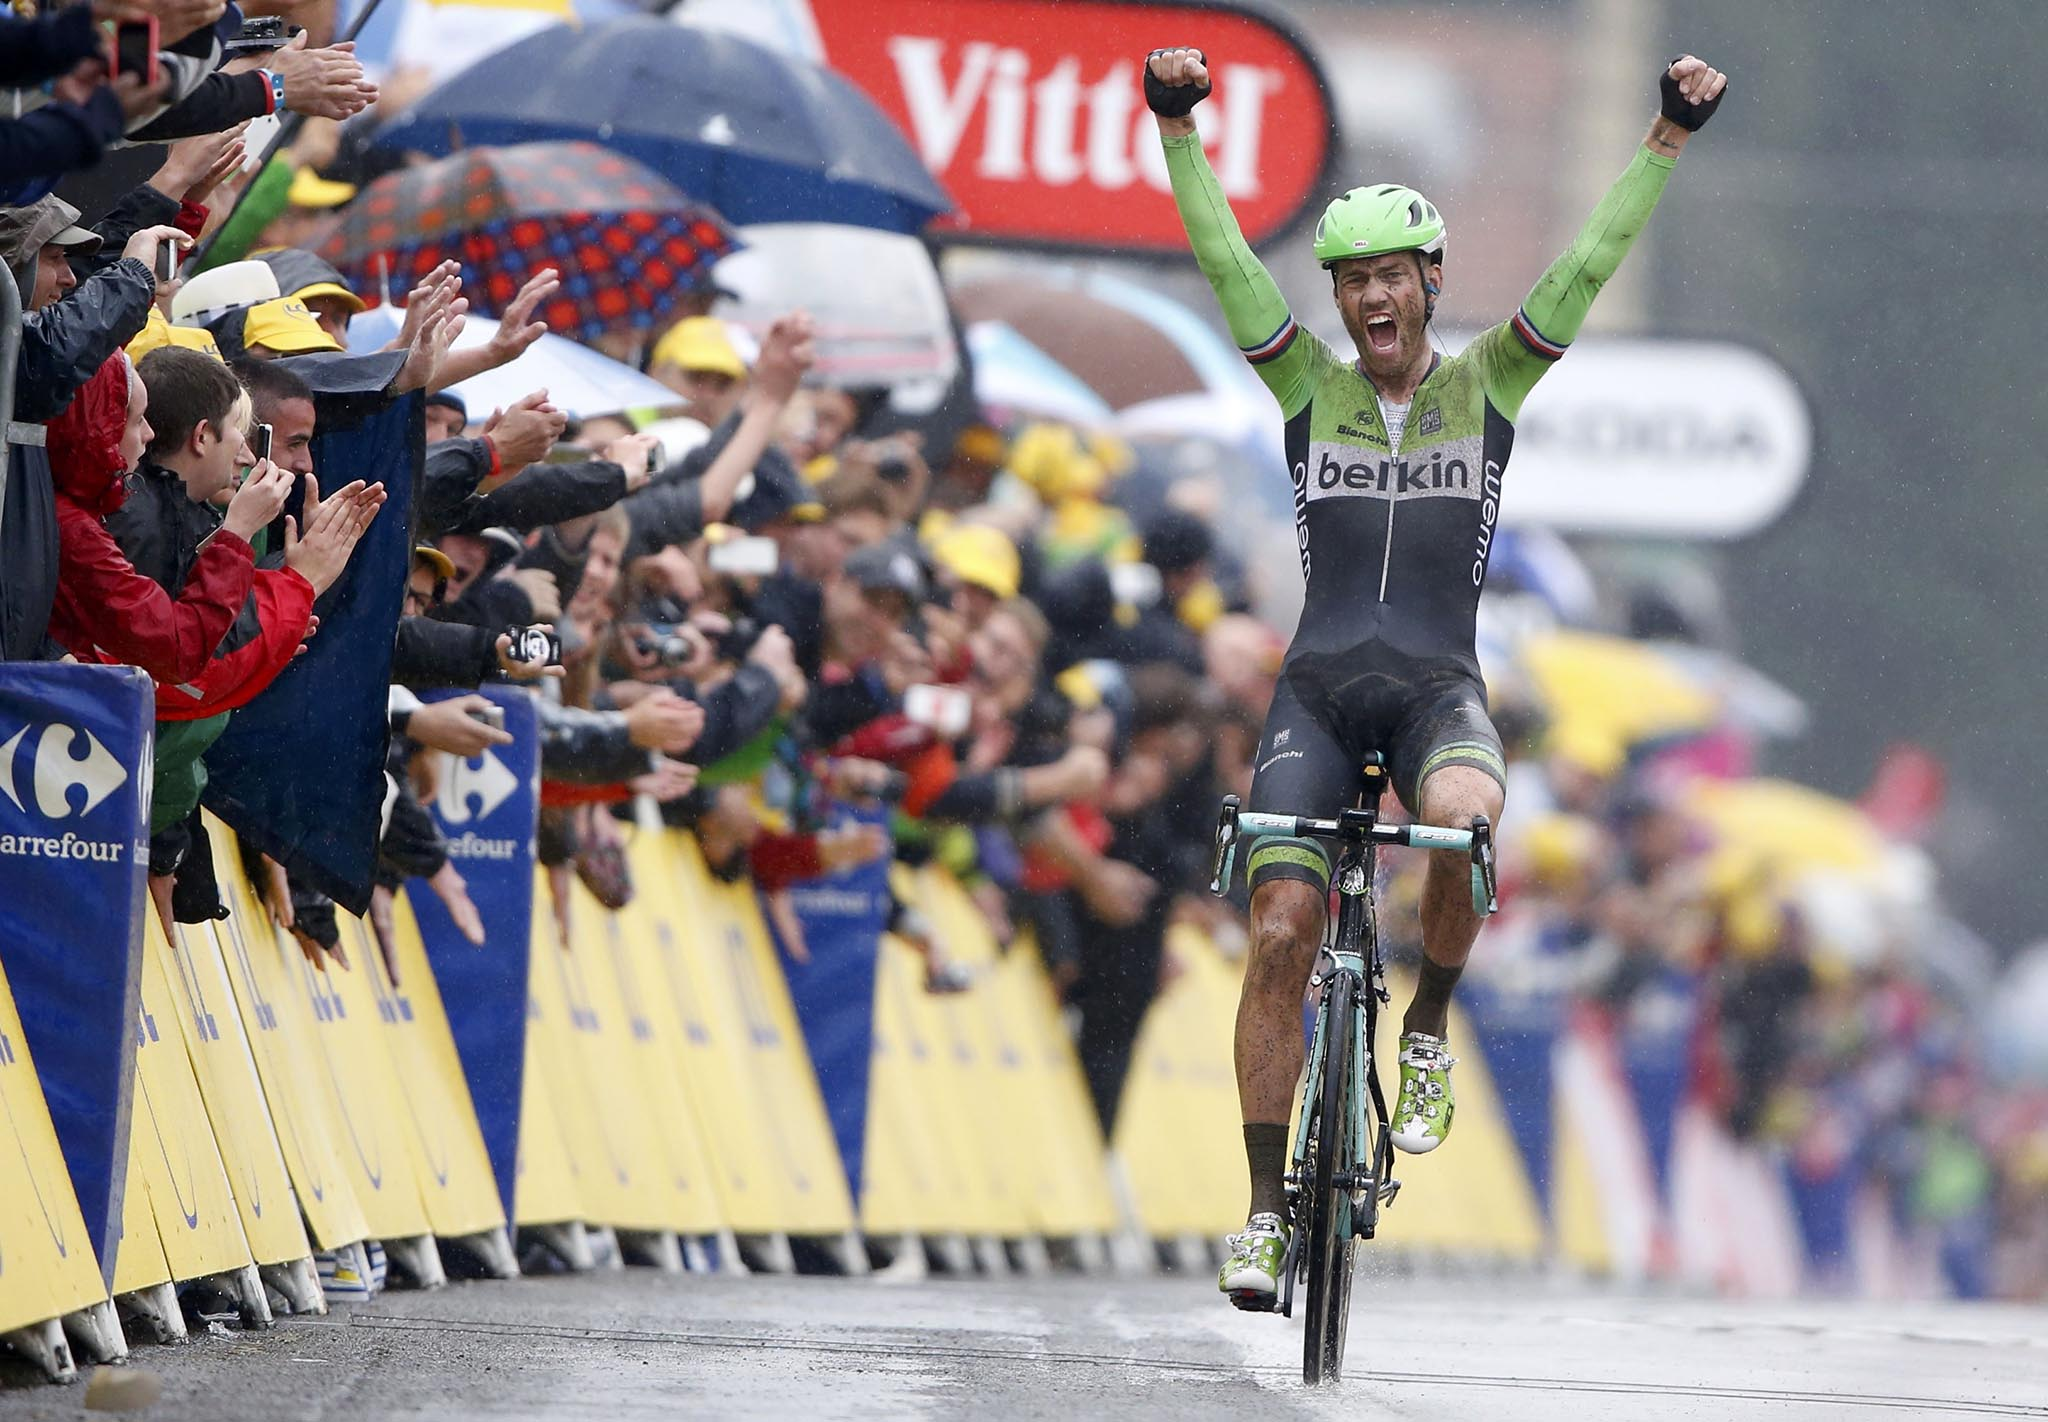 Belkin team rider Lars Boom of the Netherlands celebrates as he wins the 155.5 km fifth stage of the Tour de France cycling race